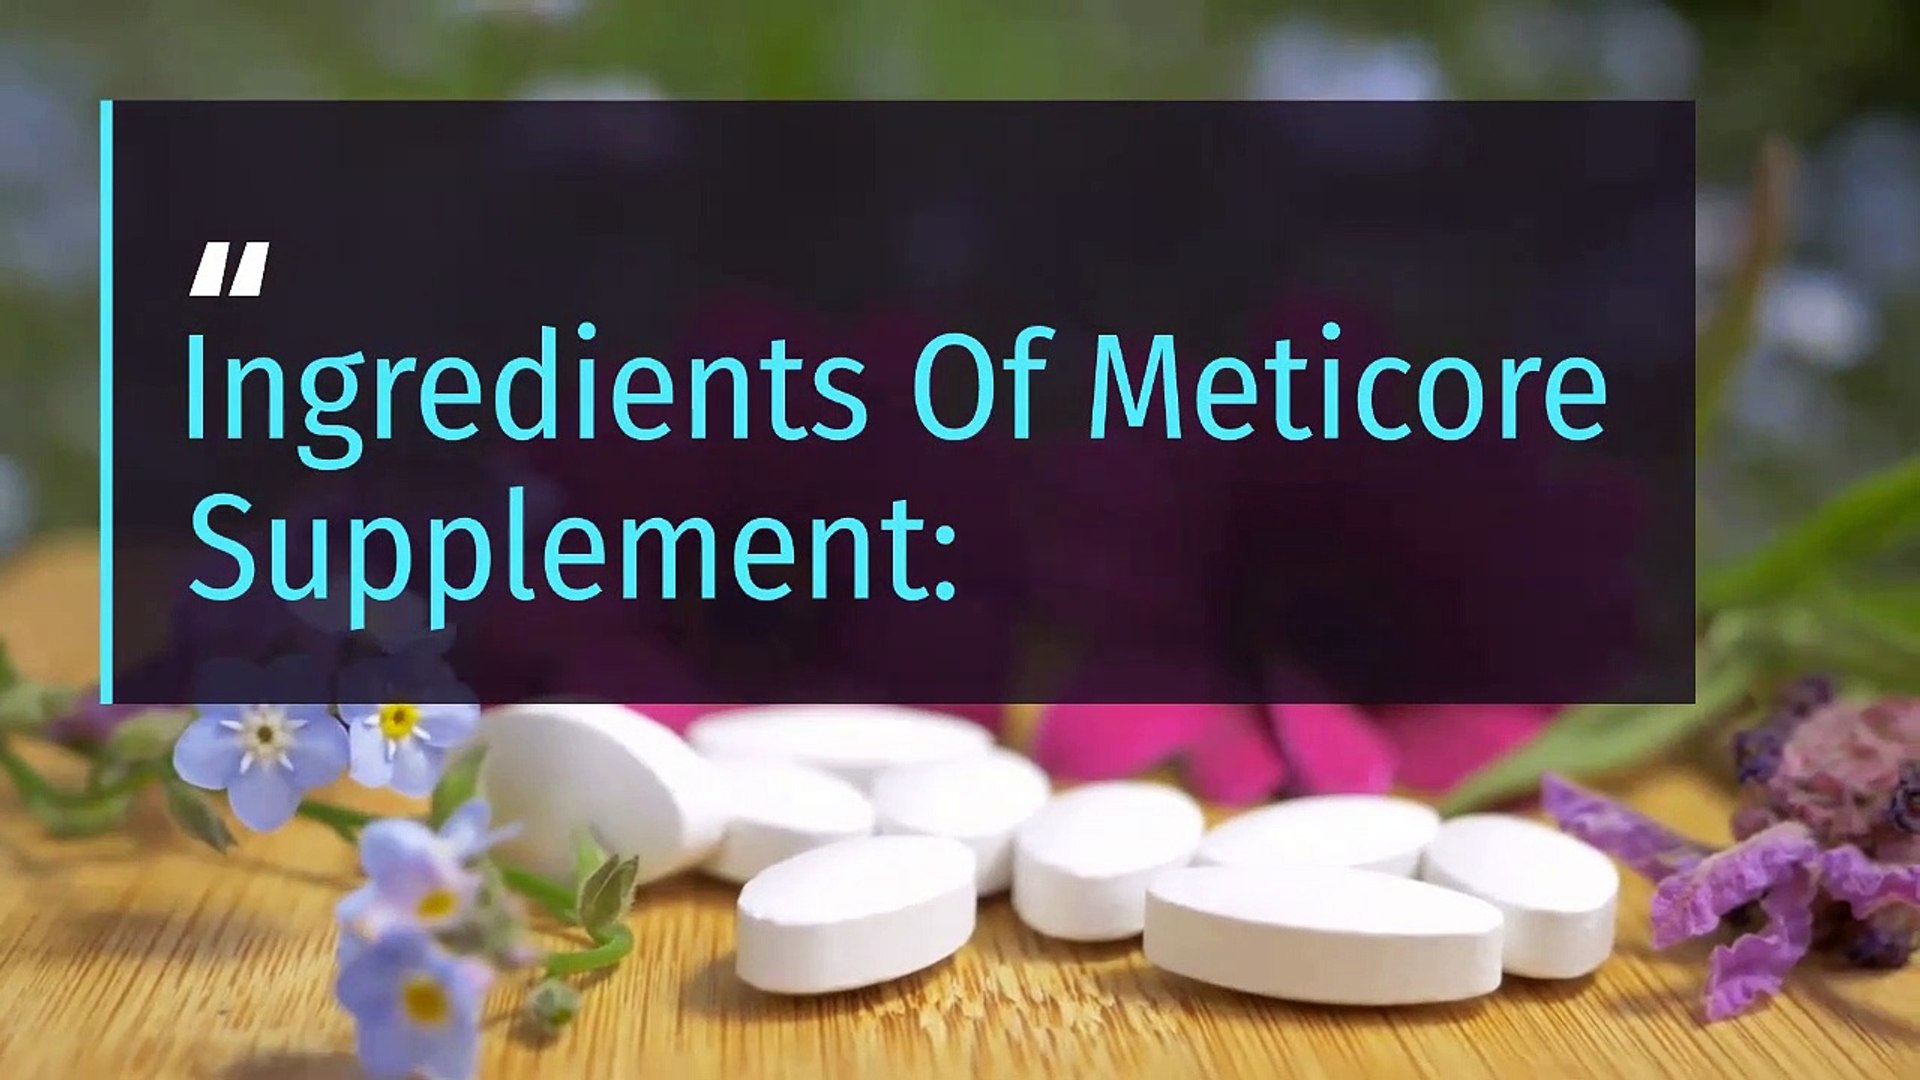 All You Need For Weight-Loss Is This Meticore Supplement post thumbnail image